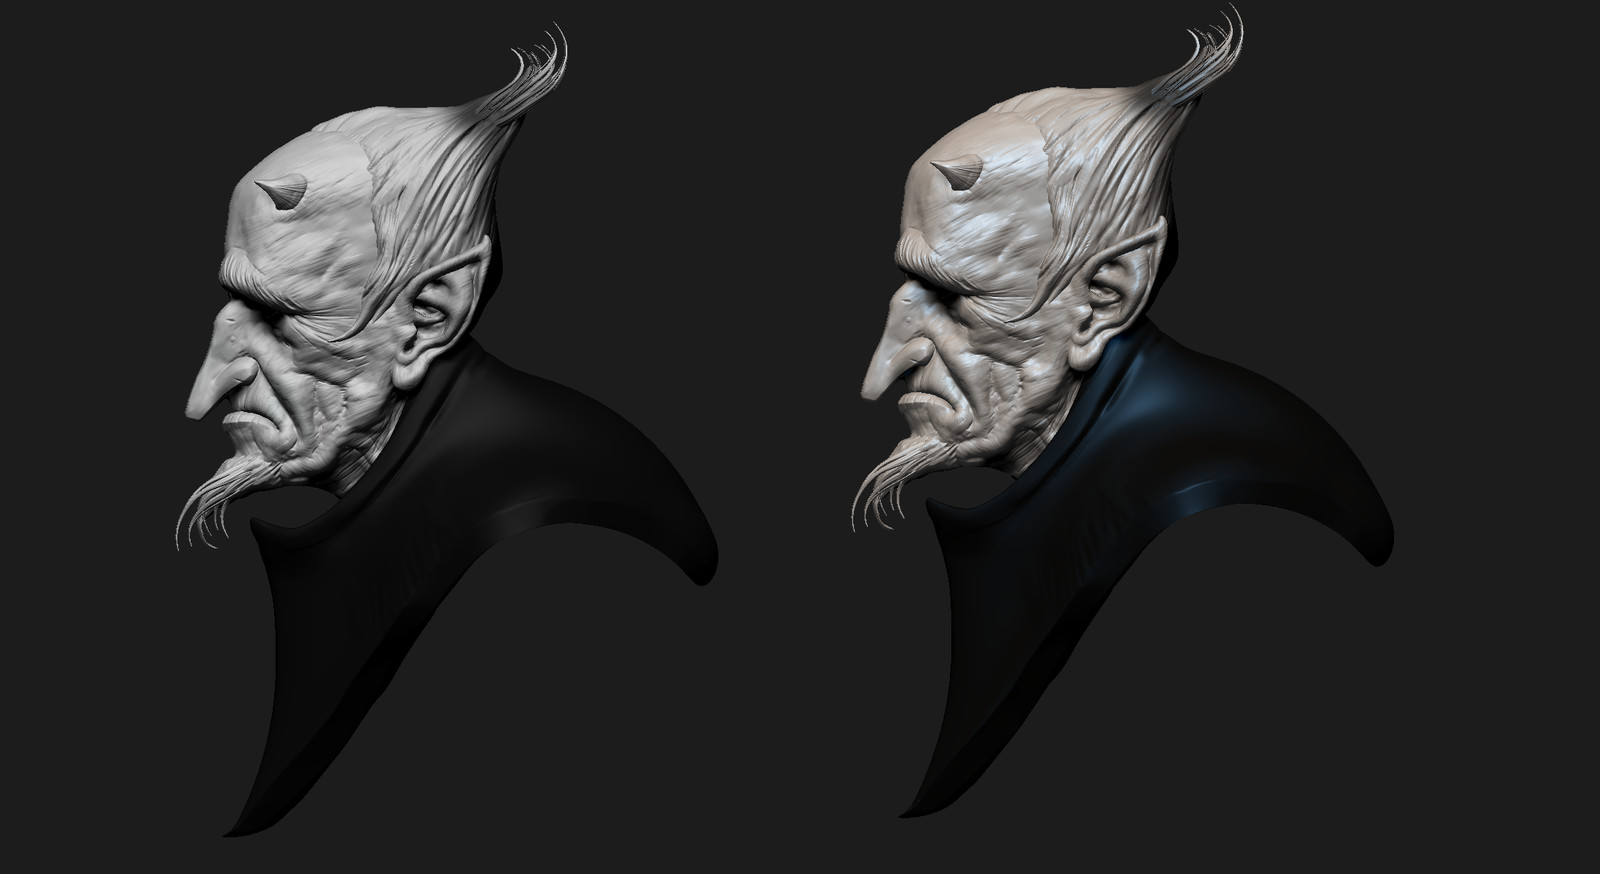 3d sculpt based upon a 2D concept by the awesome Vyacheslav Safronov